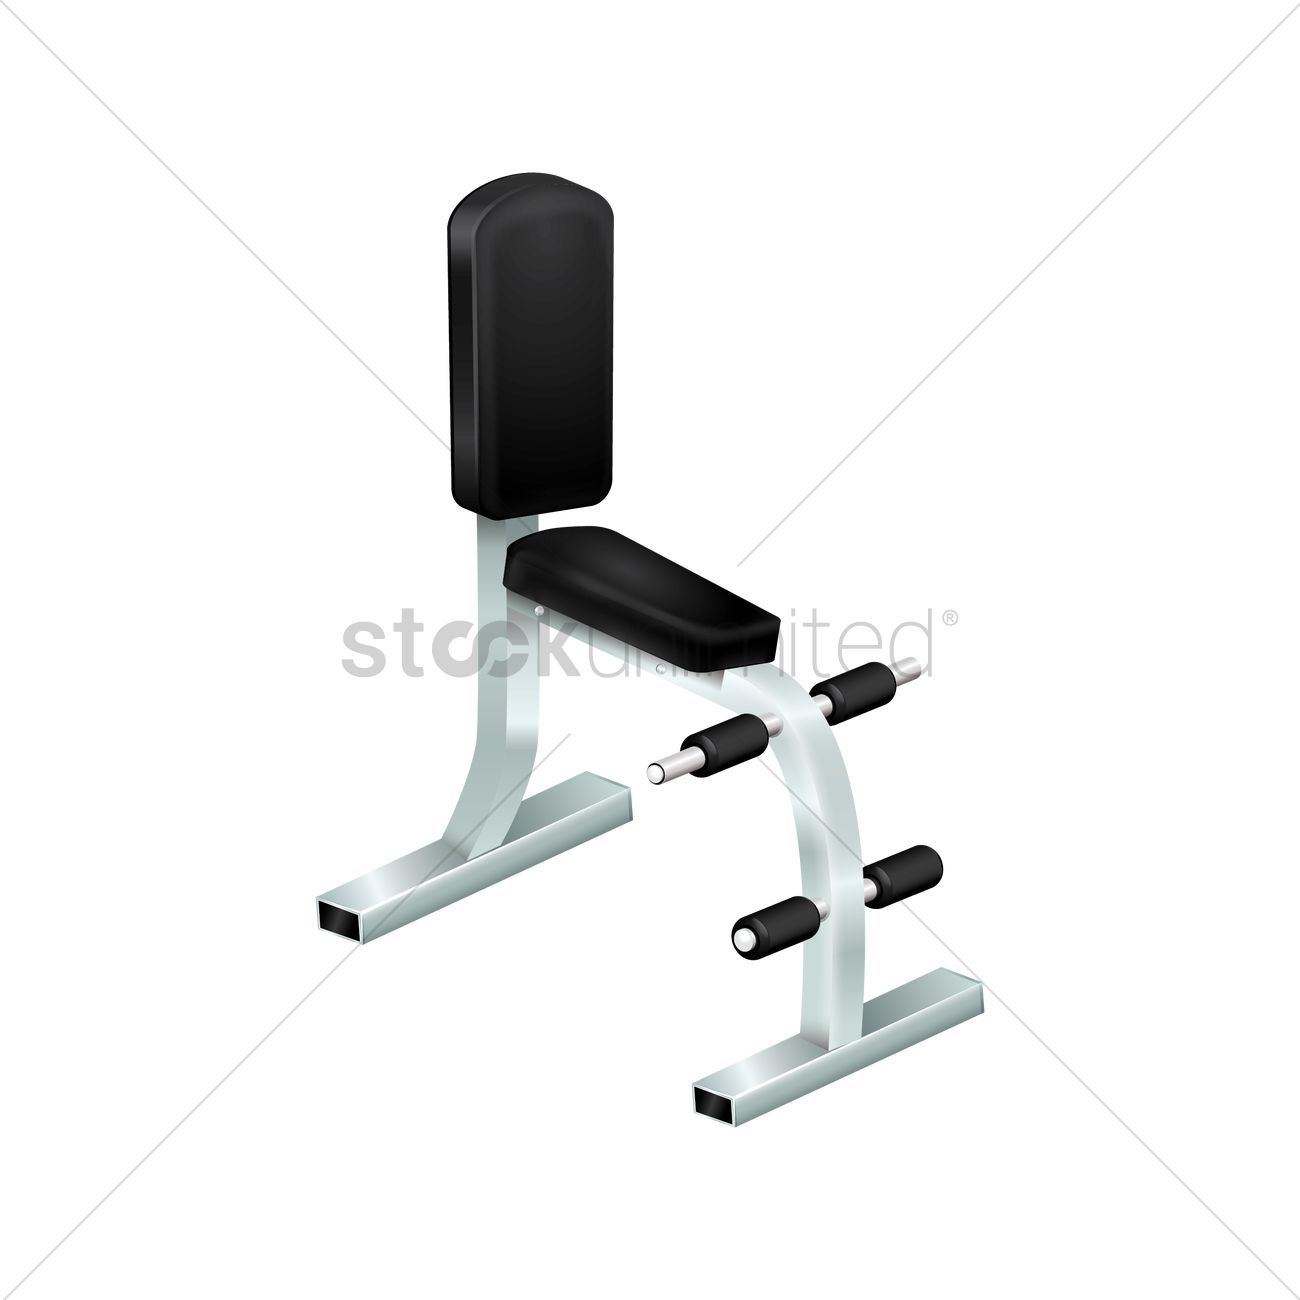 You Don T Have To Be A Designer To Get Awesome Visuals In 2020 Weight Benches Visual Design